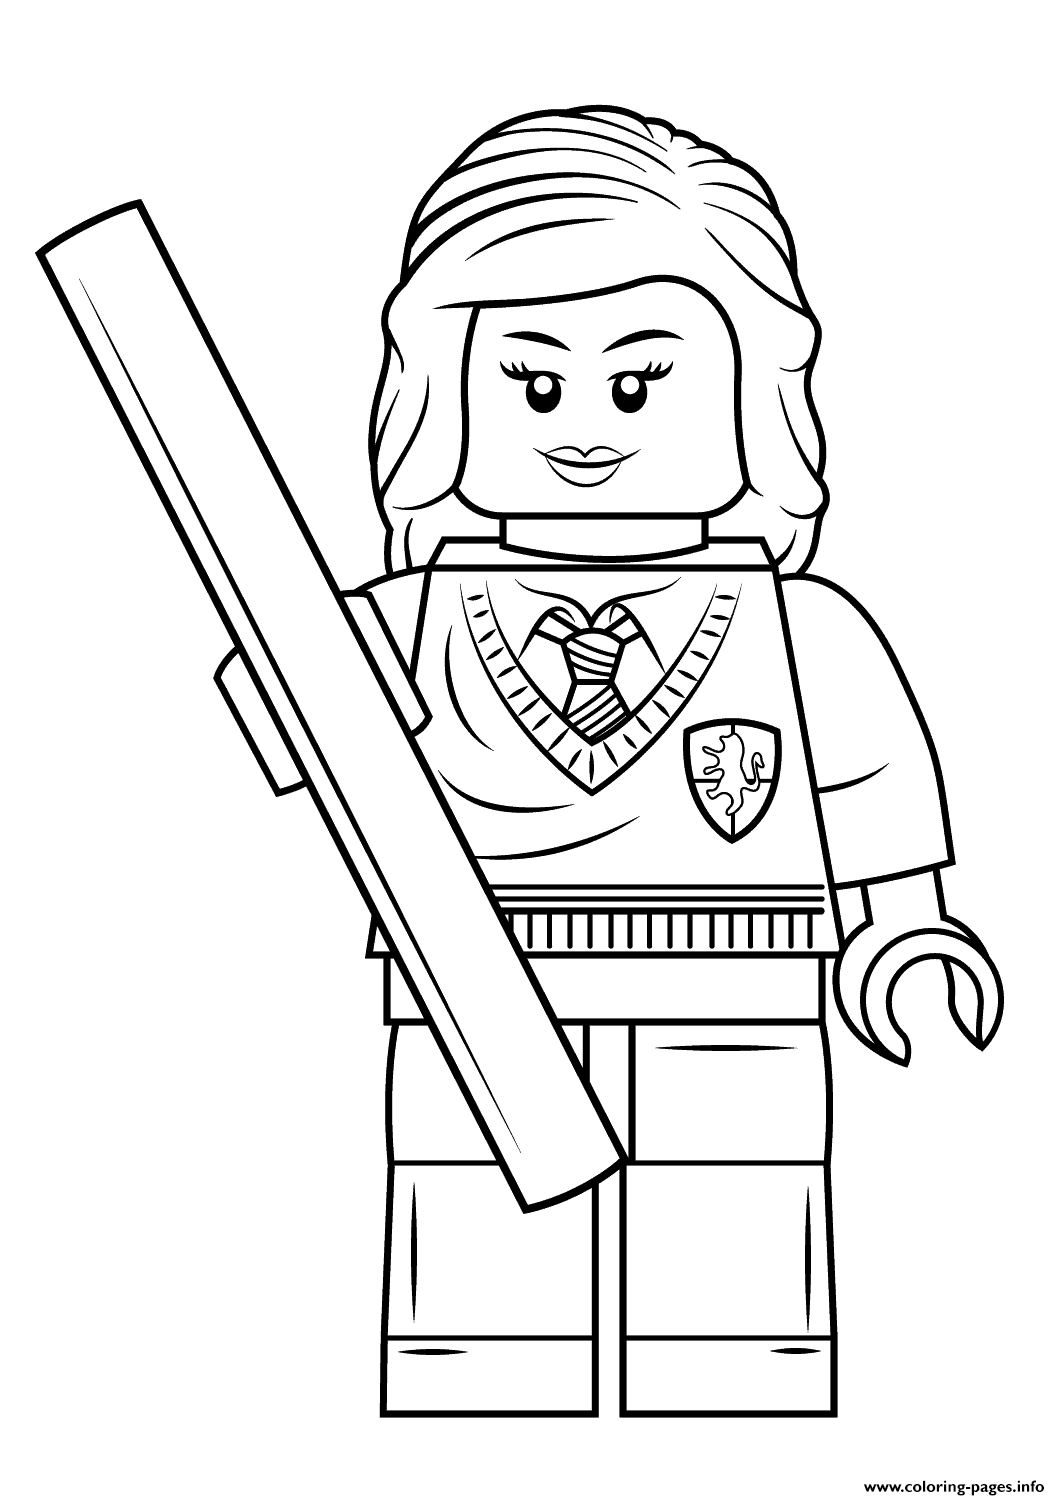 Print lego hermione granger harry potter coloring pages  Harry